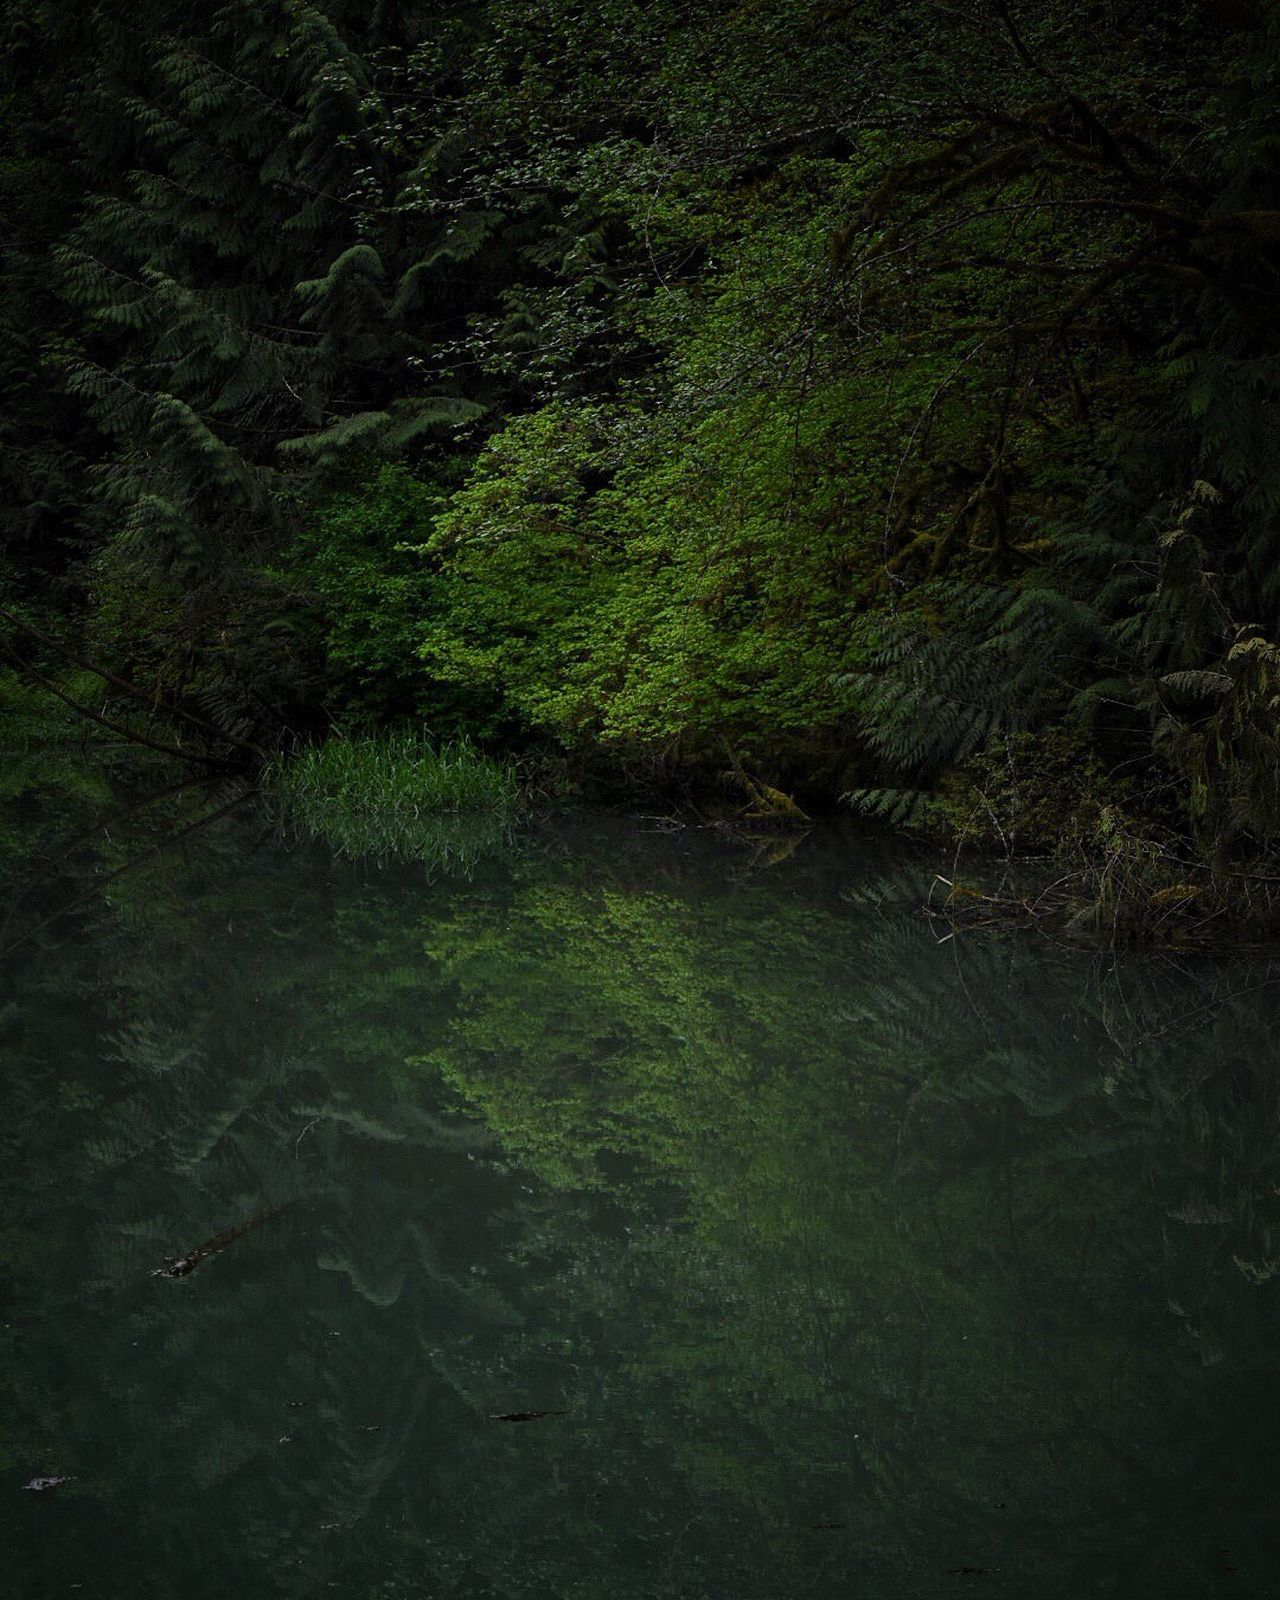 Forest Nature Water No People Green Color Beauty In Nature Tranquility Outdoors Tree Landscape Day Scenics The Great Outdoors - 2017 EyeEm Awards Waterscape Water Surface Pond Life Waterfront Water_collection Water Reflections Pond Beauty In Nature